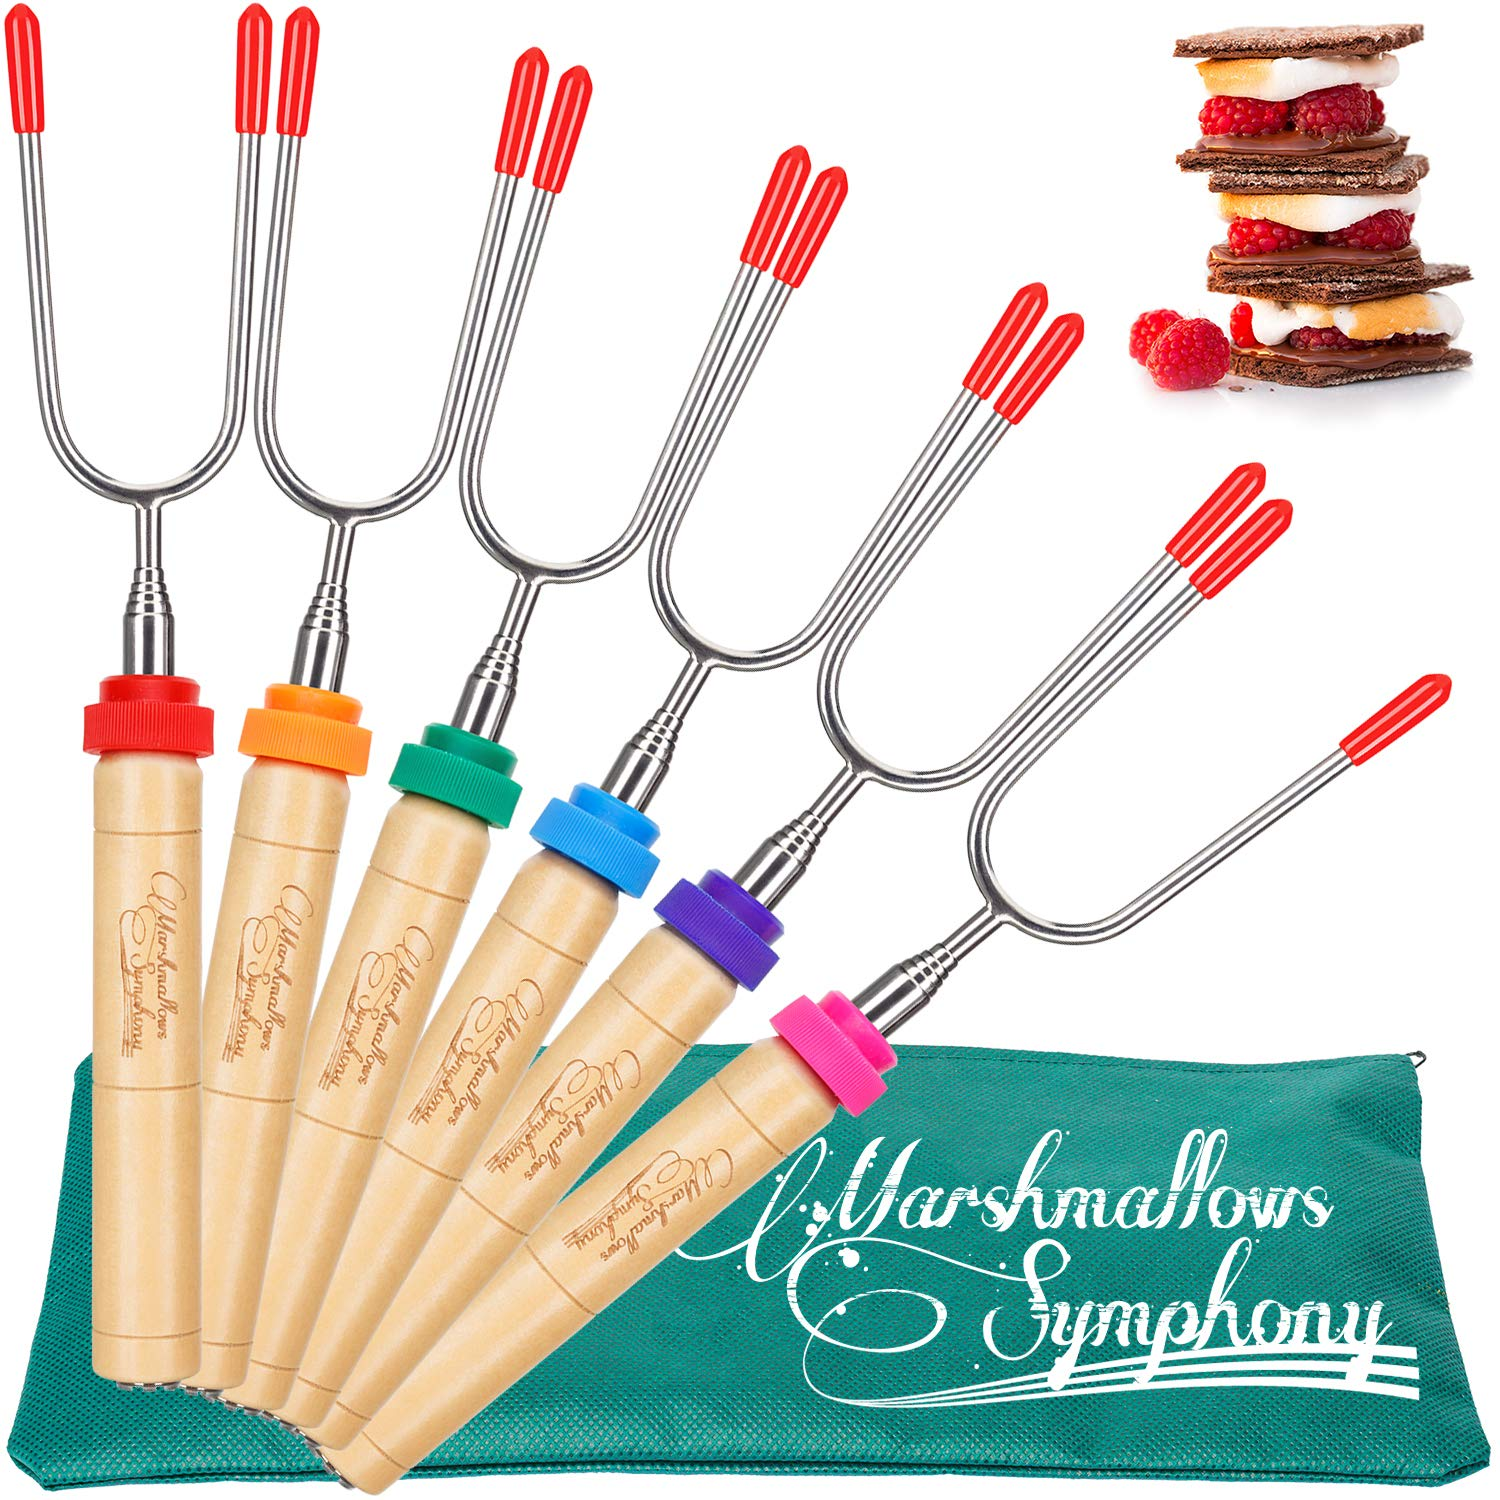 CARPATHEN Marshmallow Roasting Sticks - set of 6 Telescopic Smores Skewers Extra Long Heavy Duty - Perfect Hot Dog Forks for Outdoor Fire Pit & Fireplace, Camping Grill, Campfire & Bonfire Accessories